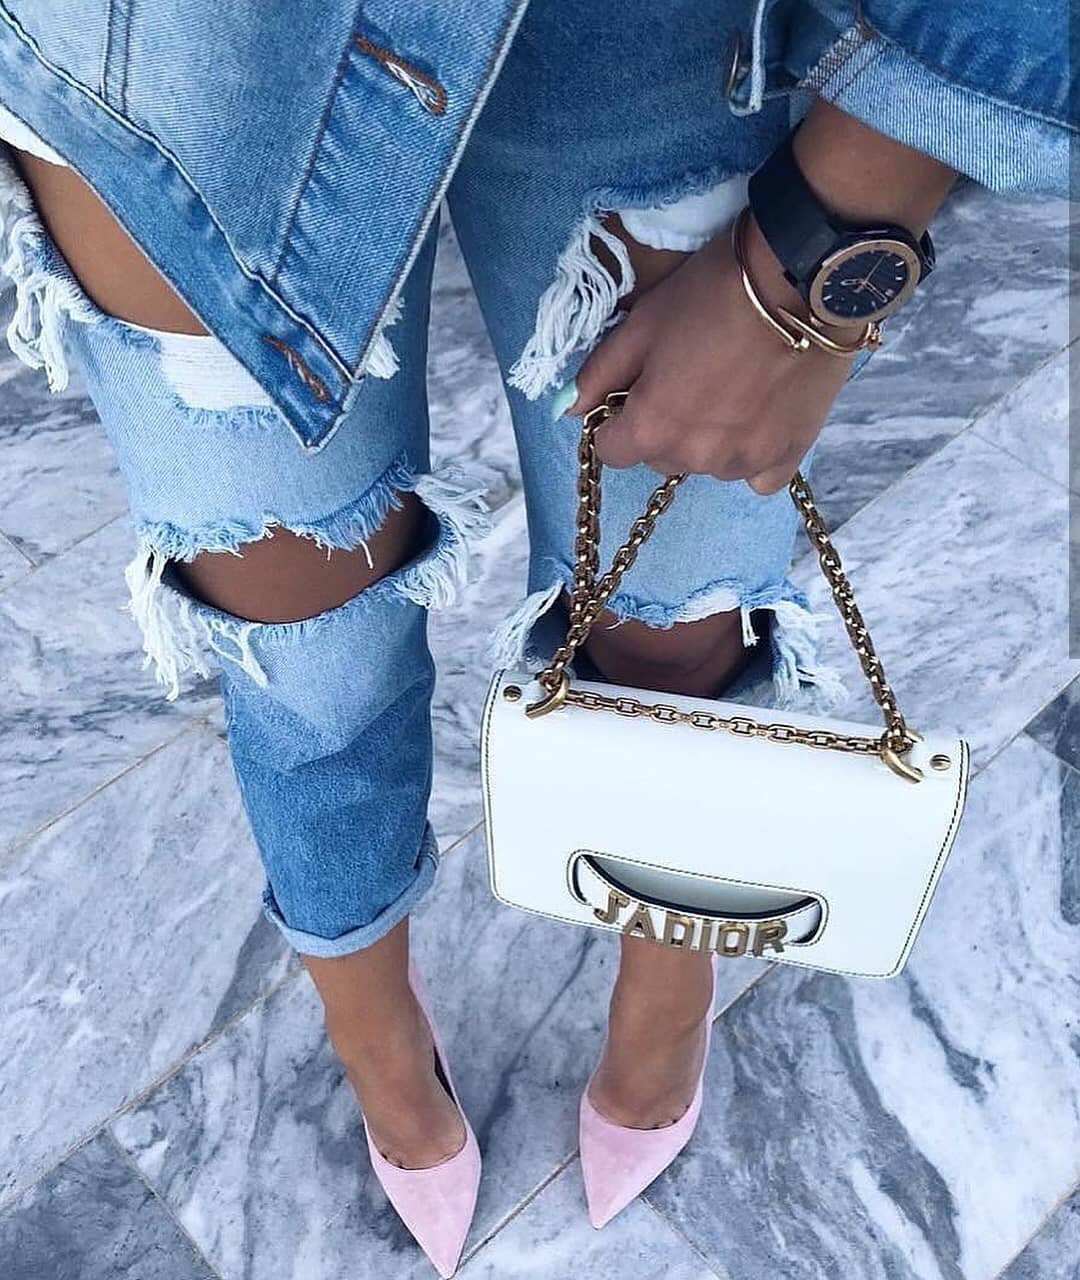 Double Denim Look With Blush Heels And White Clutch Bag For Summer 2021